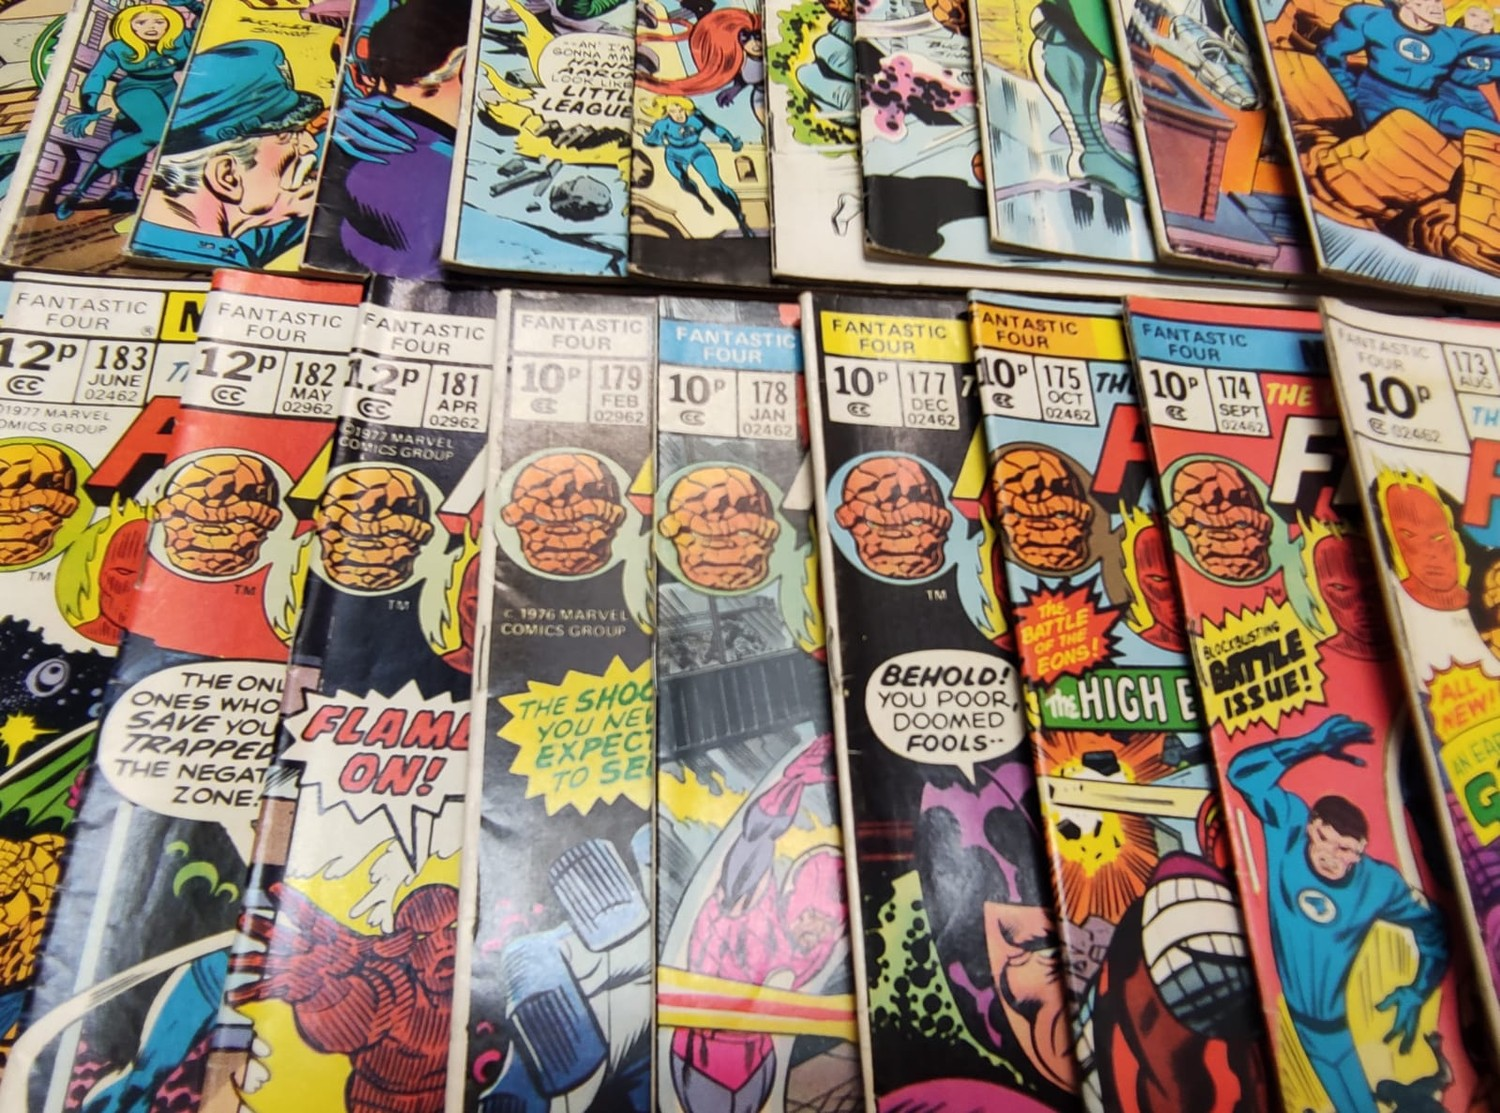 30x Marvel Fantastic four mid 1970s editions. Used, in good condition. - Image 9 of 17